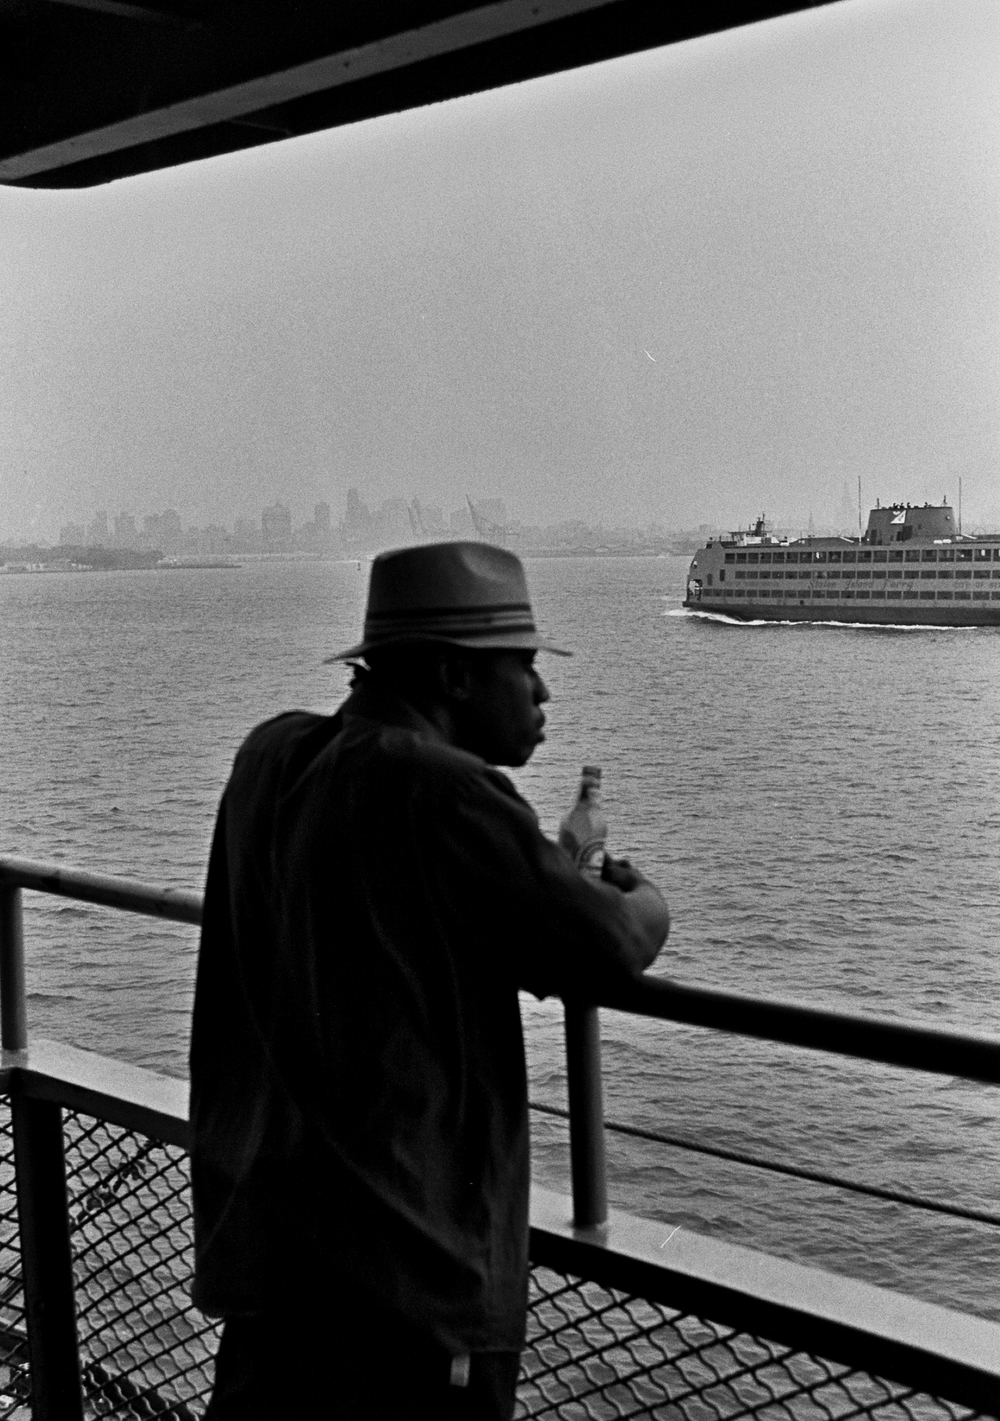 Man on ferry, New York, NY